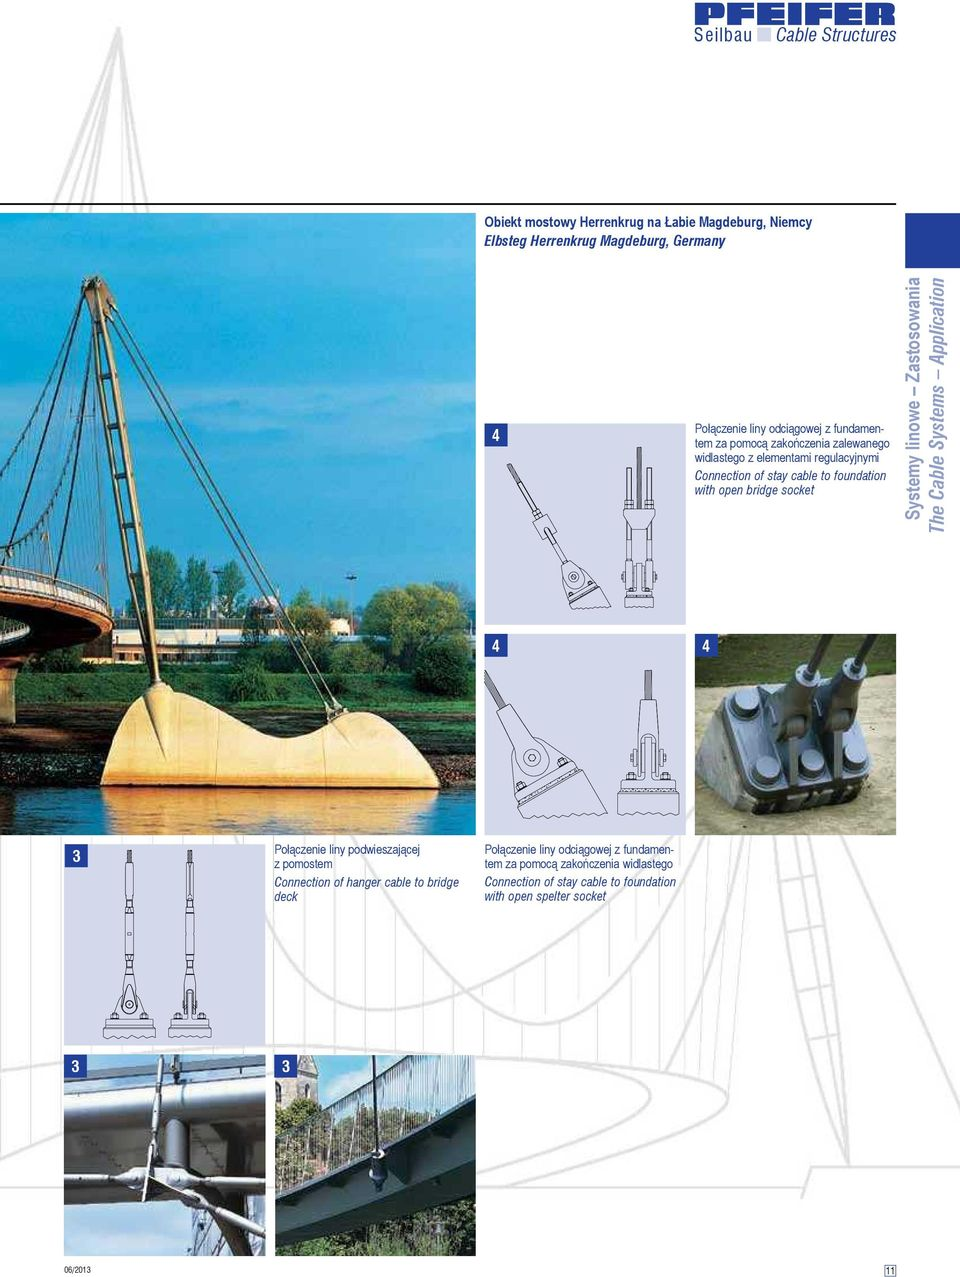 linowe Zastosowania The Cable Systems Application 4 4 3 Połączenie liny podwieszającej z pomostem Connection of hanger cable to bridge deck